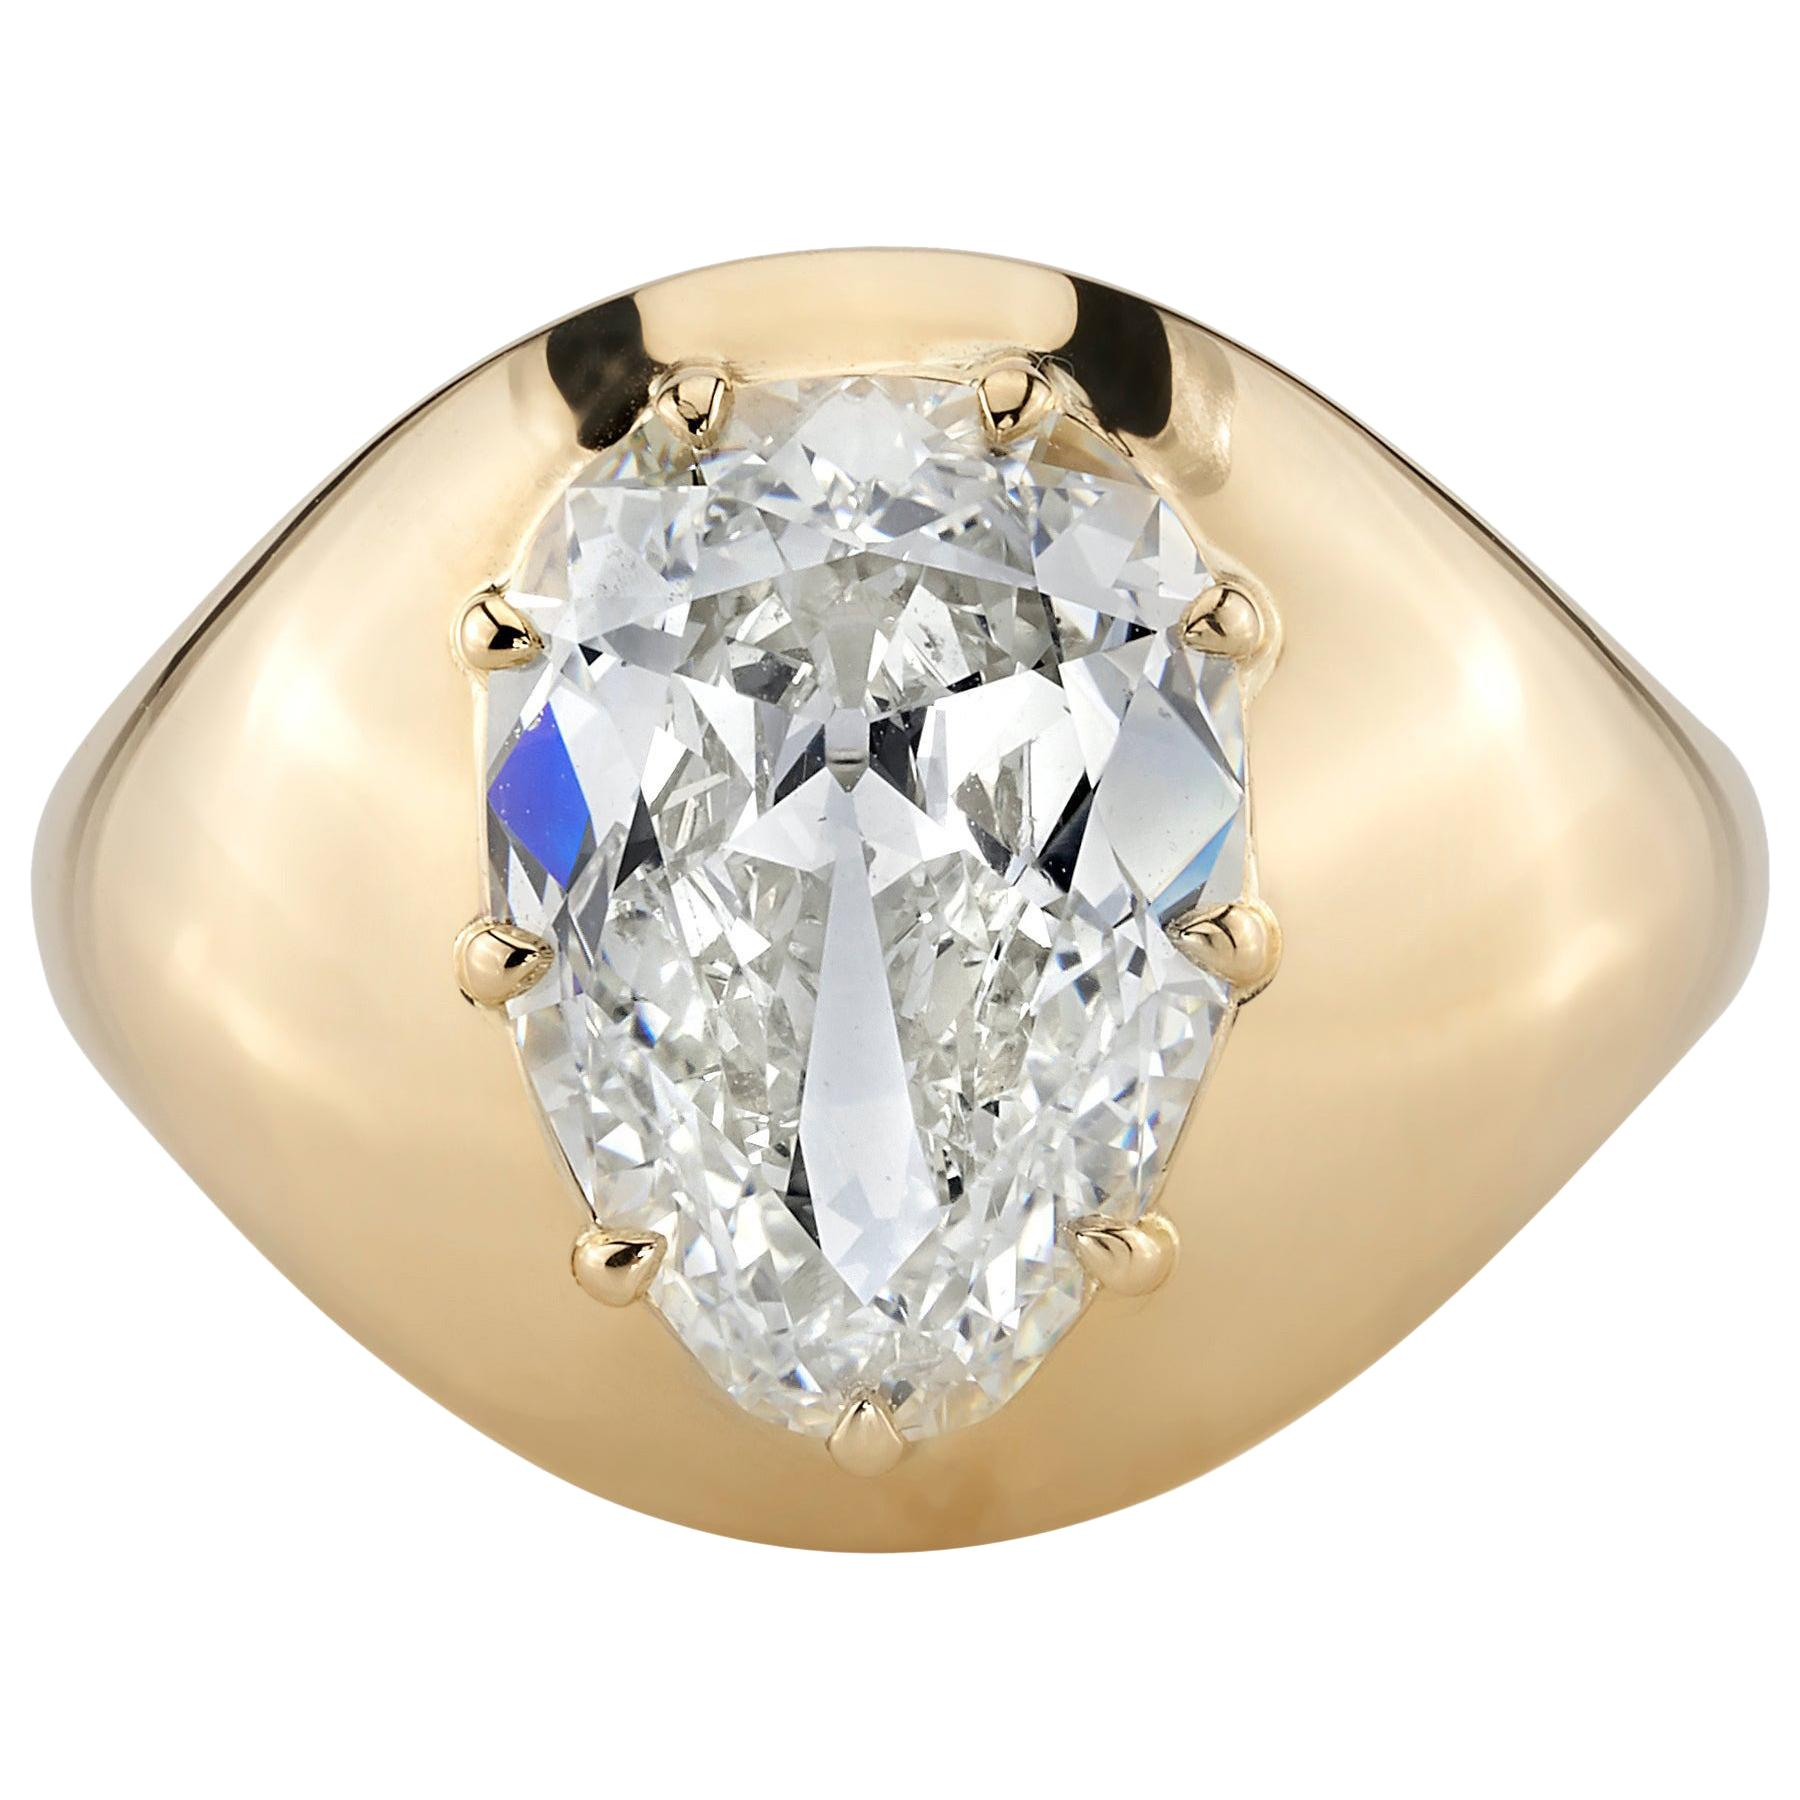 Handcrafted Bryn Pear Shaped Diamond Ring by Single Stone